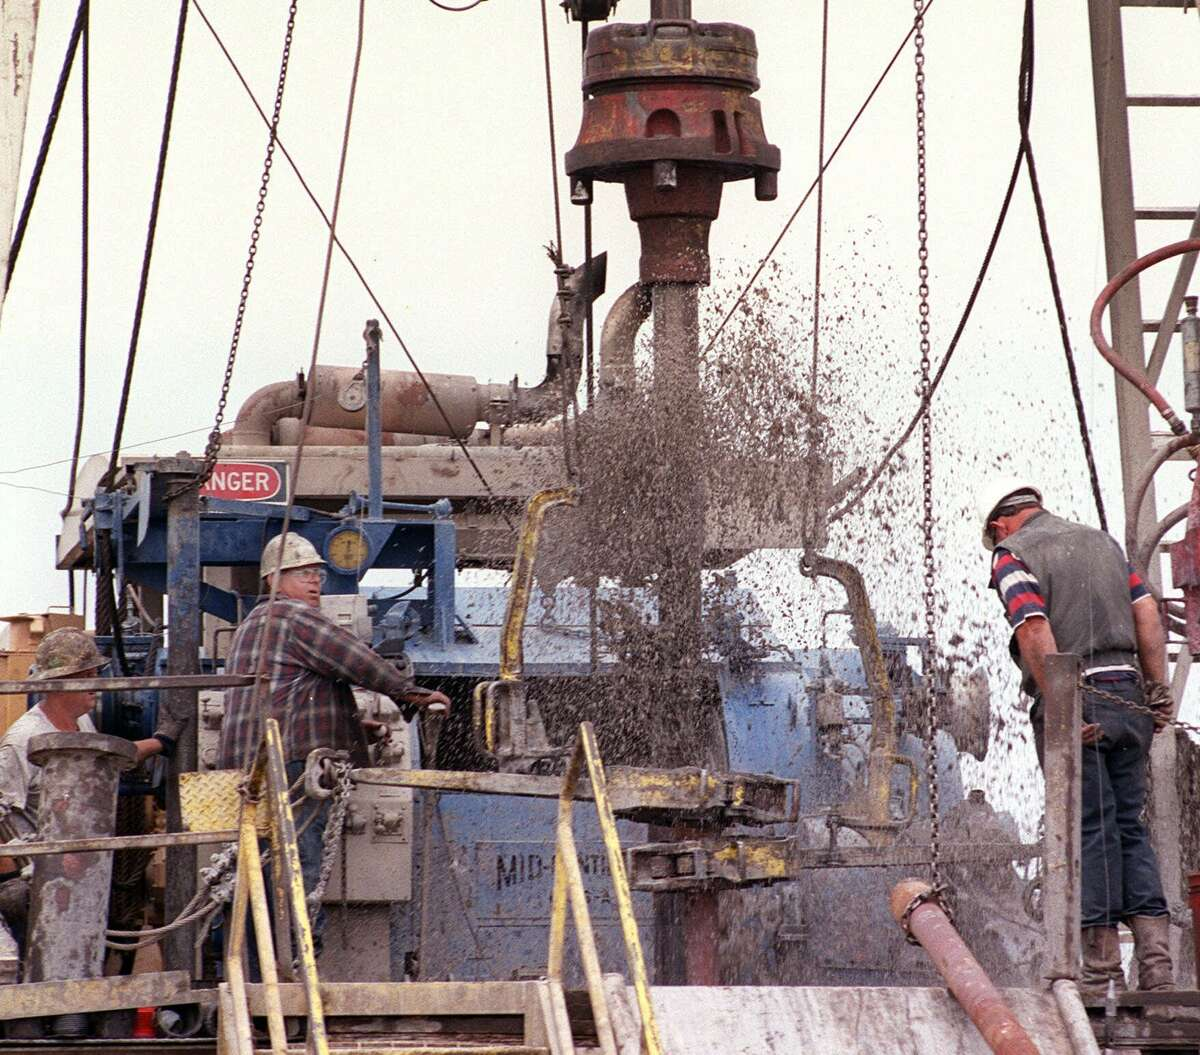 A Mitchell Energy & Development rig drills for natural gas in North Texas. George Mitchell was a pioneer in finding natural gas.